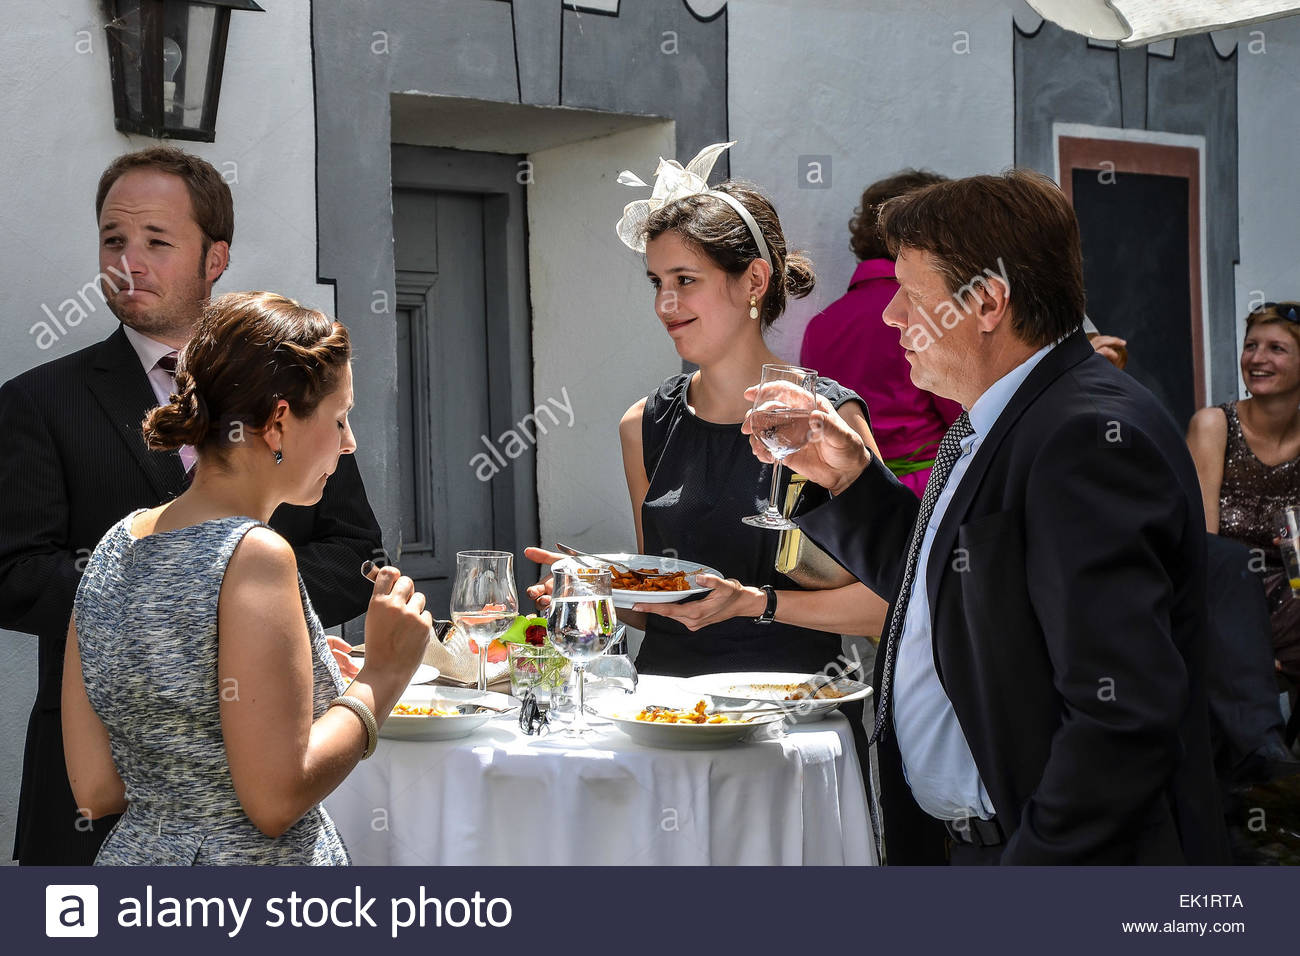 wedding guests eating stock photos wedding guests eating stock images alamy. Black Bedroom Furniture Sets. Home Design Ideas